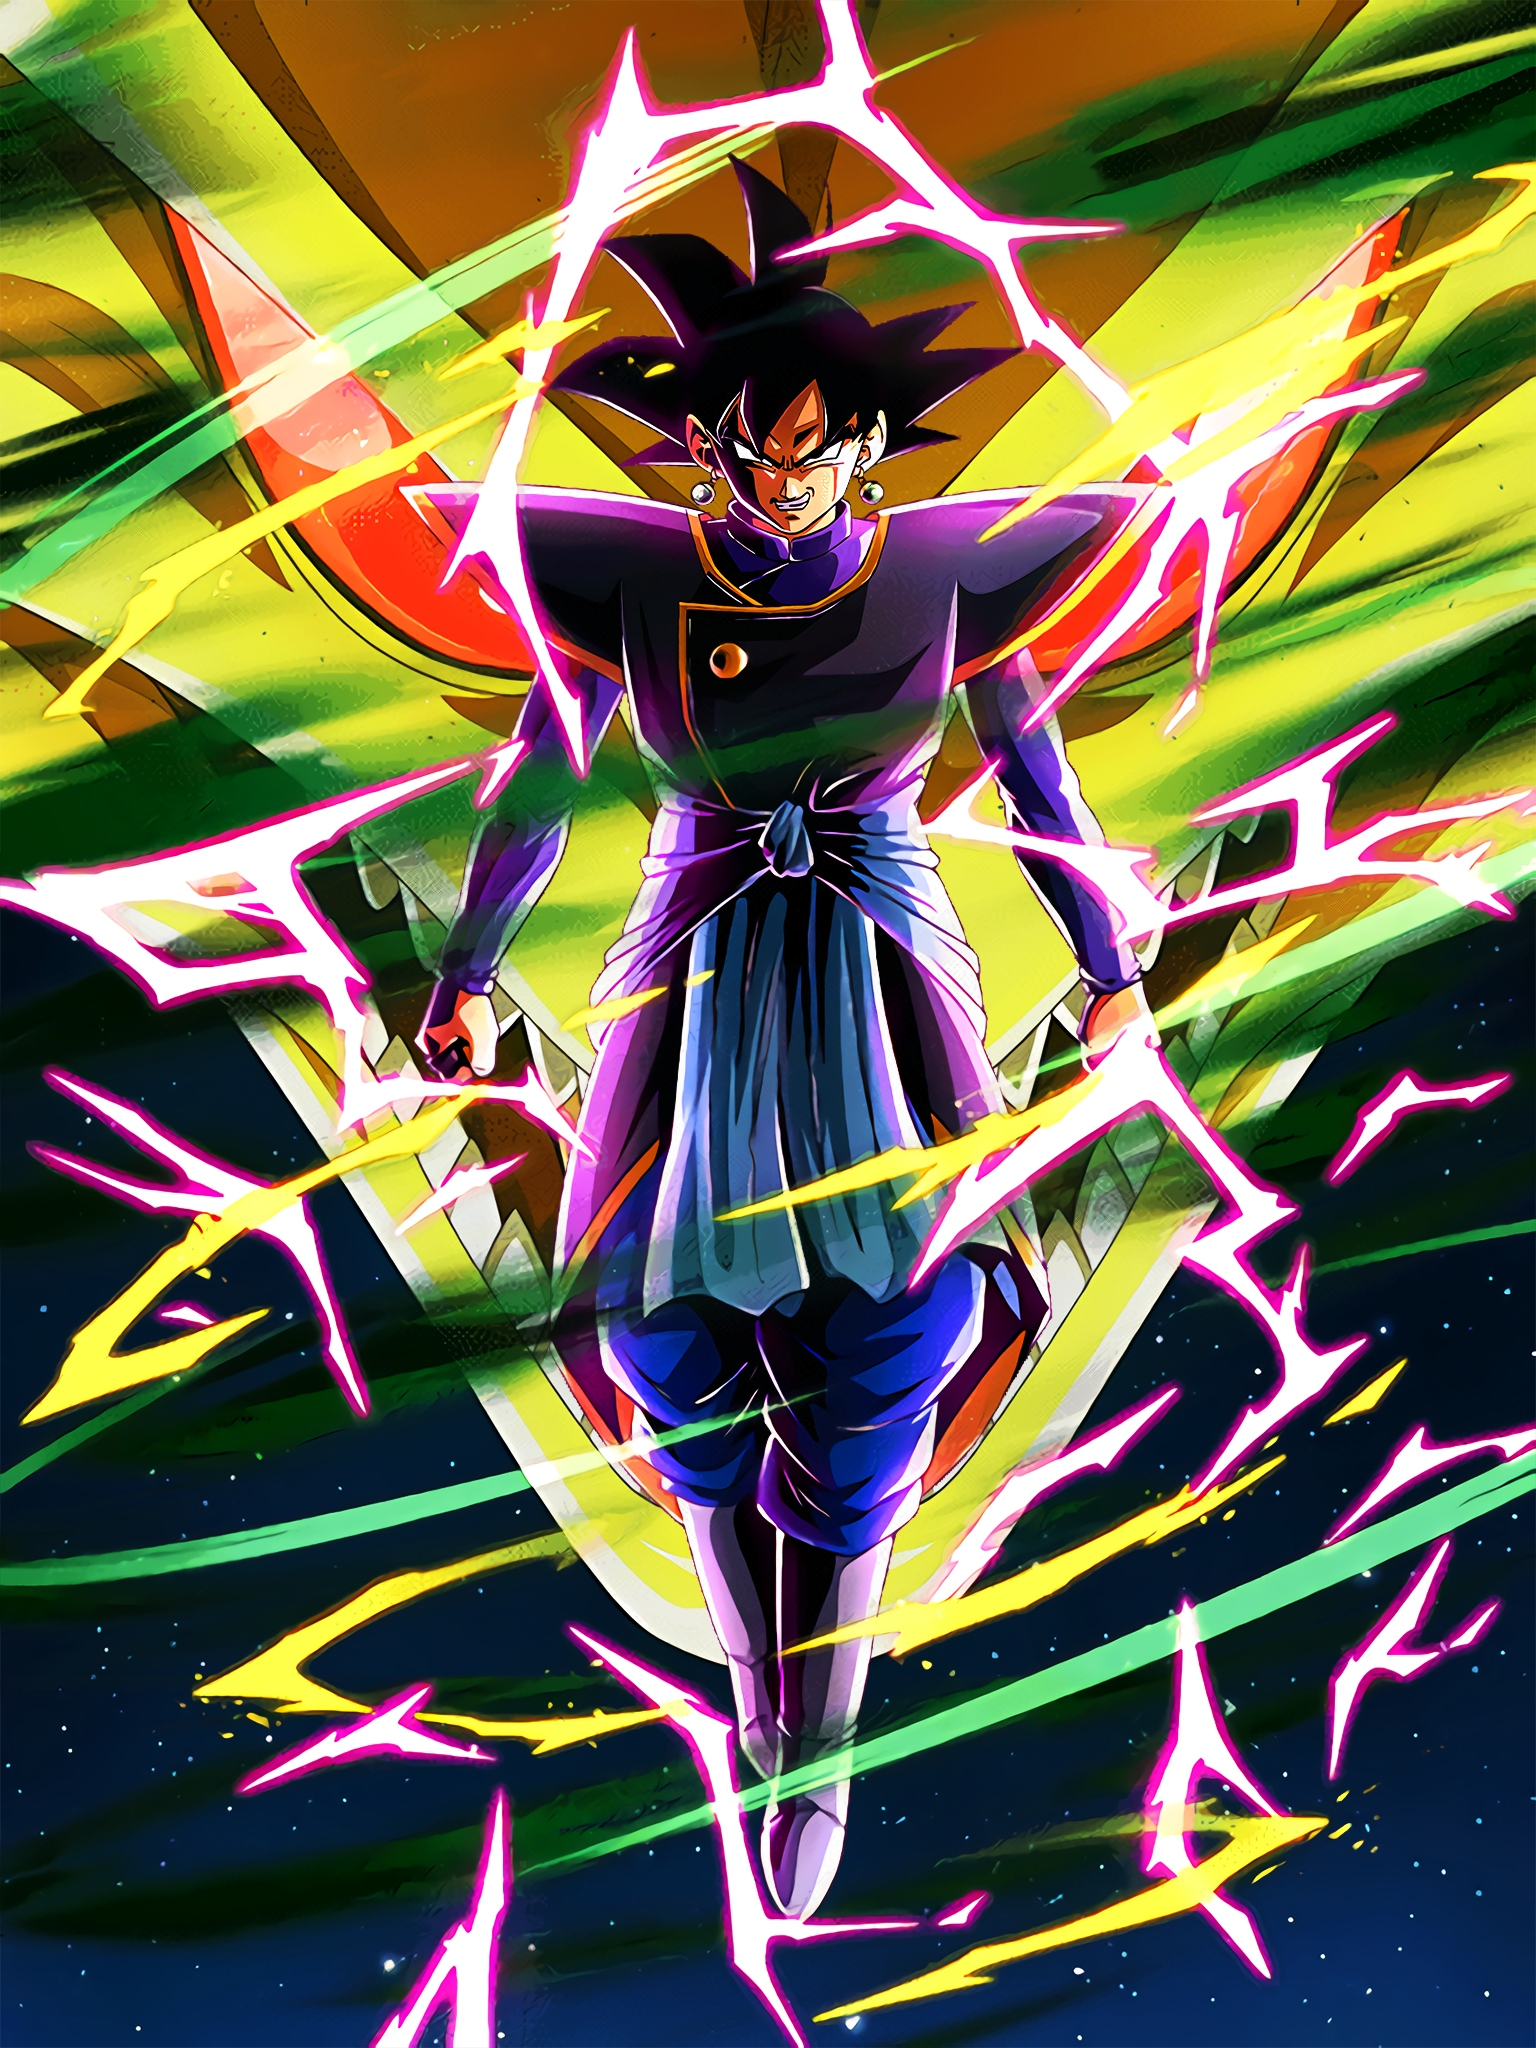 Beginning of Jet-Black Justice Zamasu Goku Art (Dragon Ball Z Dokkan Battle).jpg